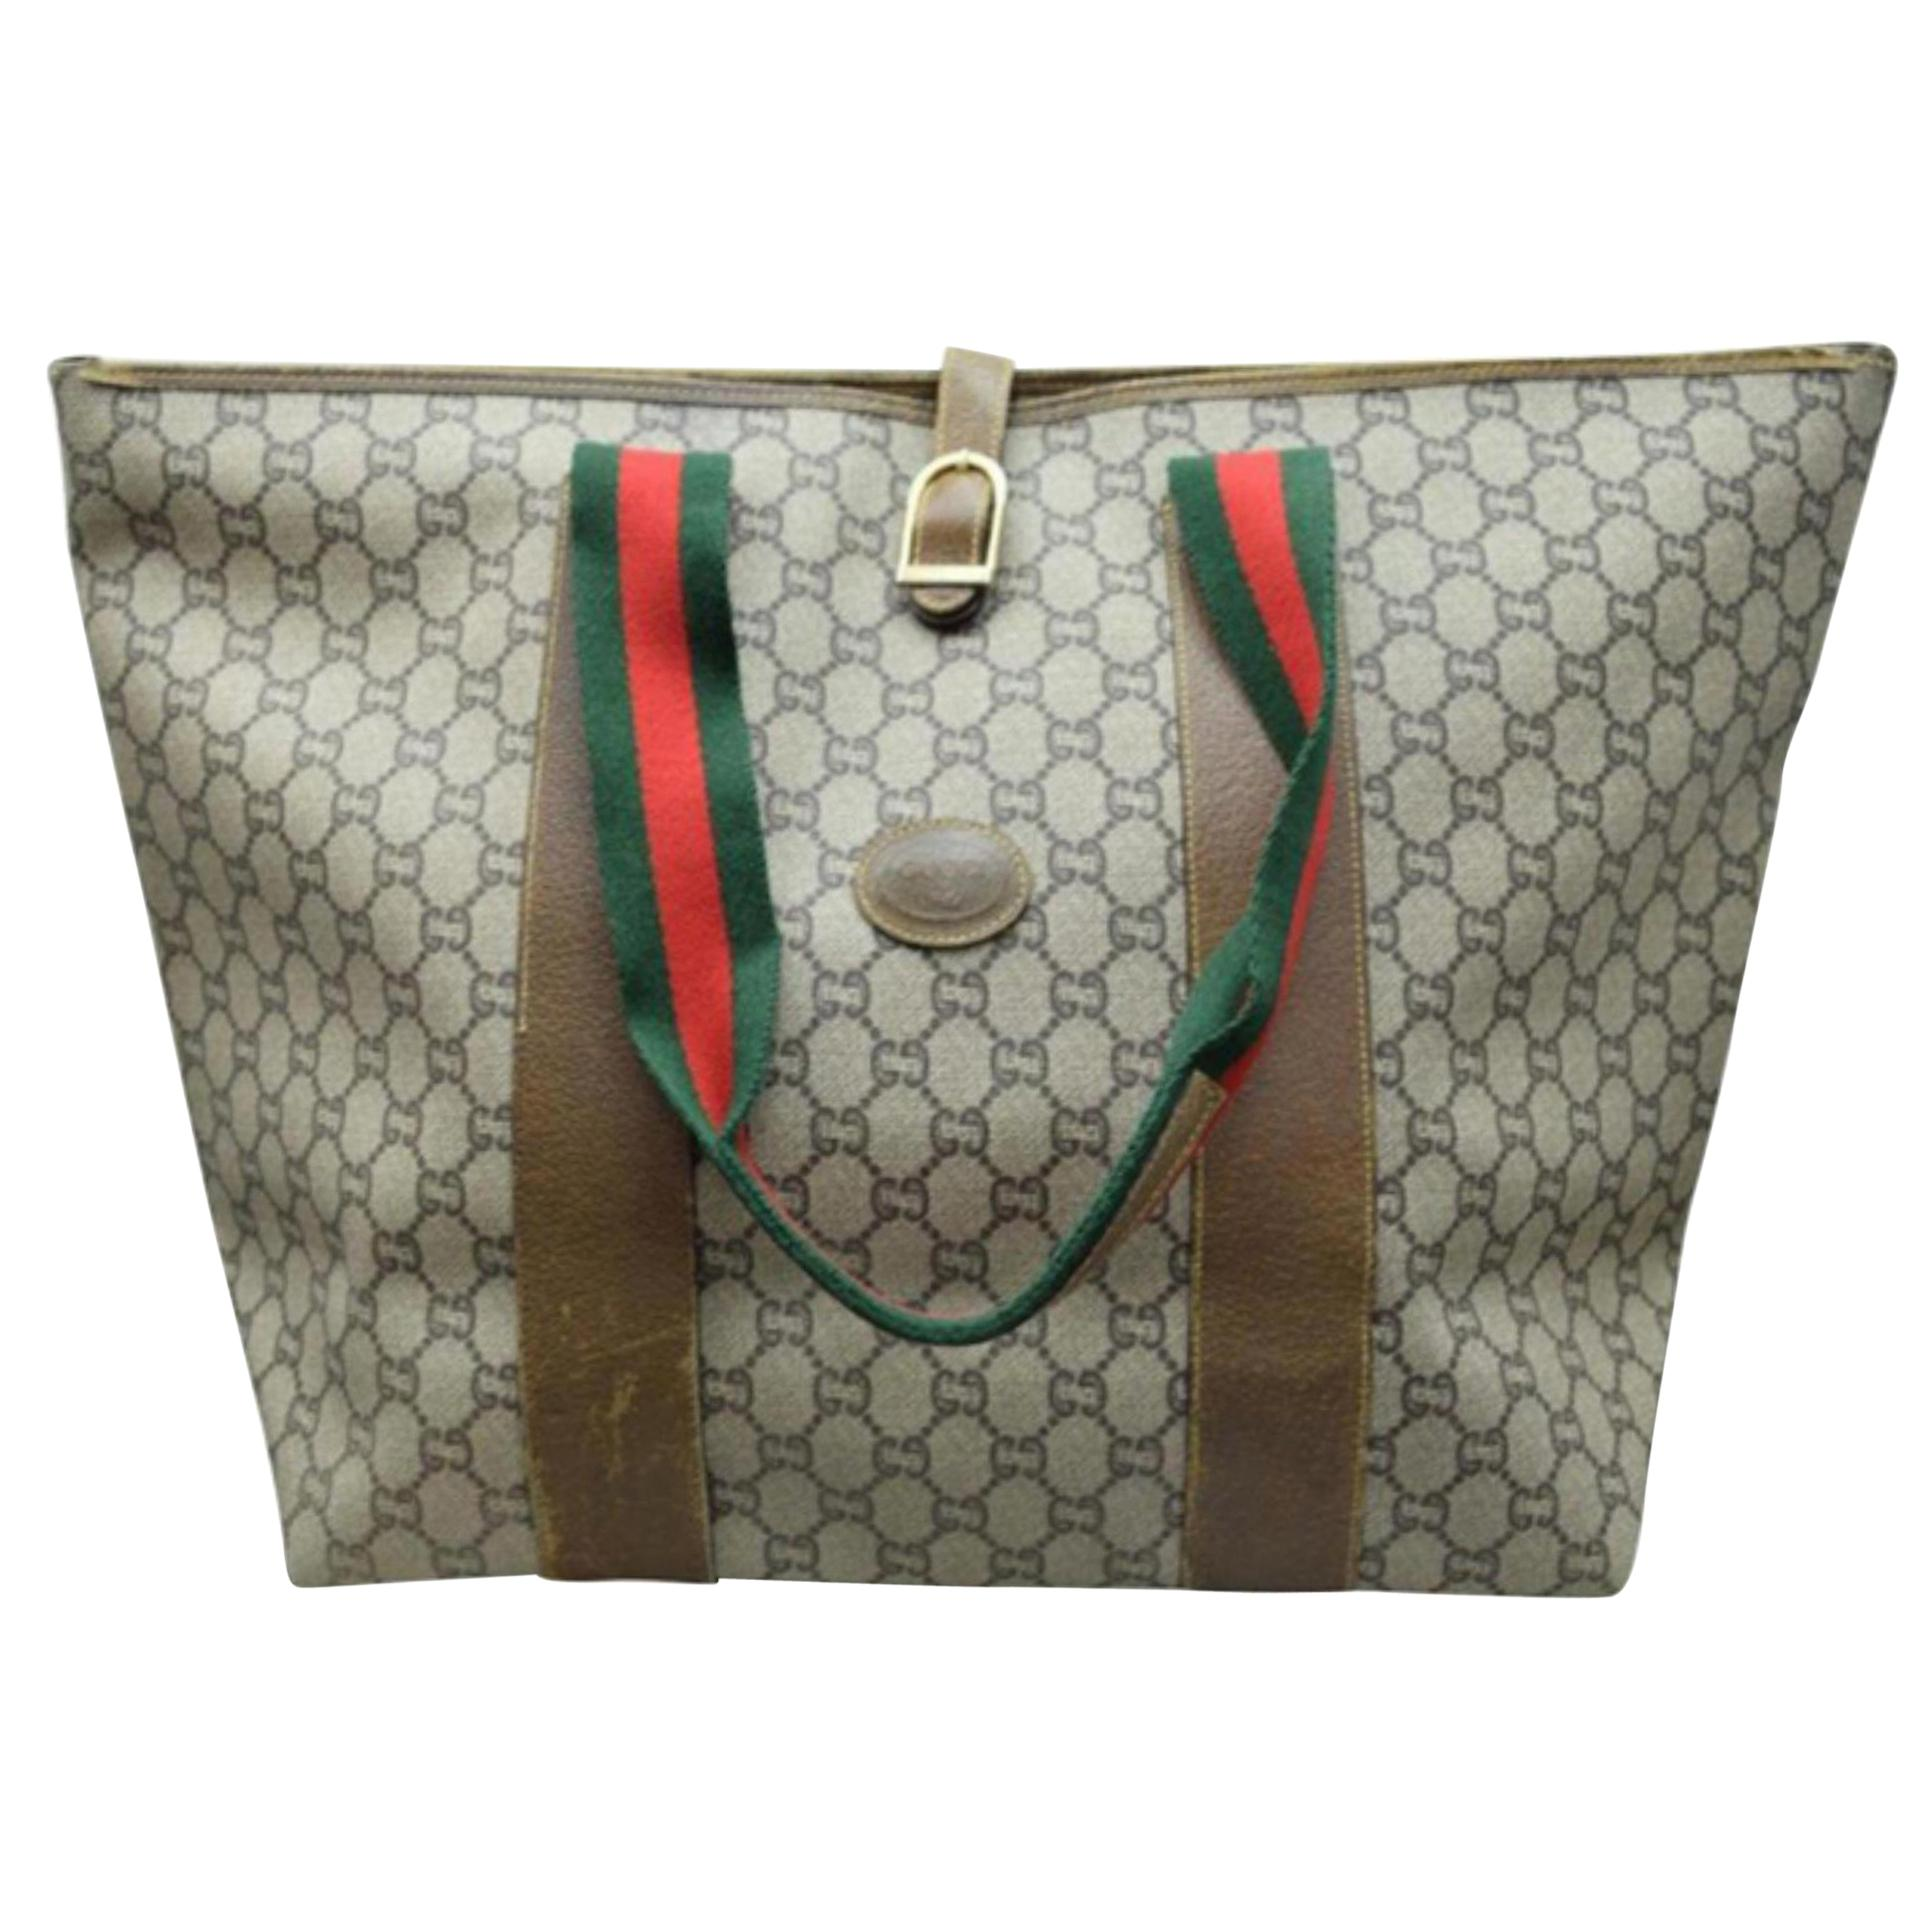 f674330dce04c6 Vintage Gucci Tote Bags - 410 For Sale at 1stdibs